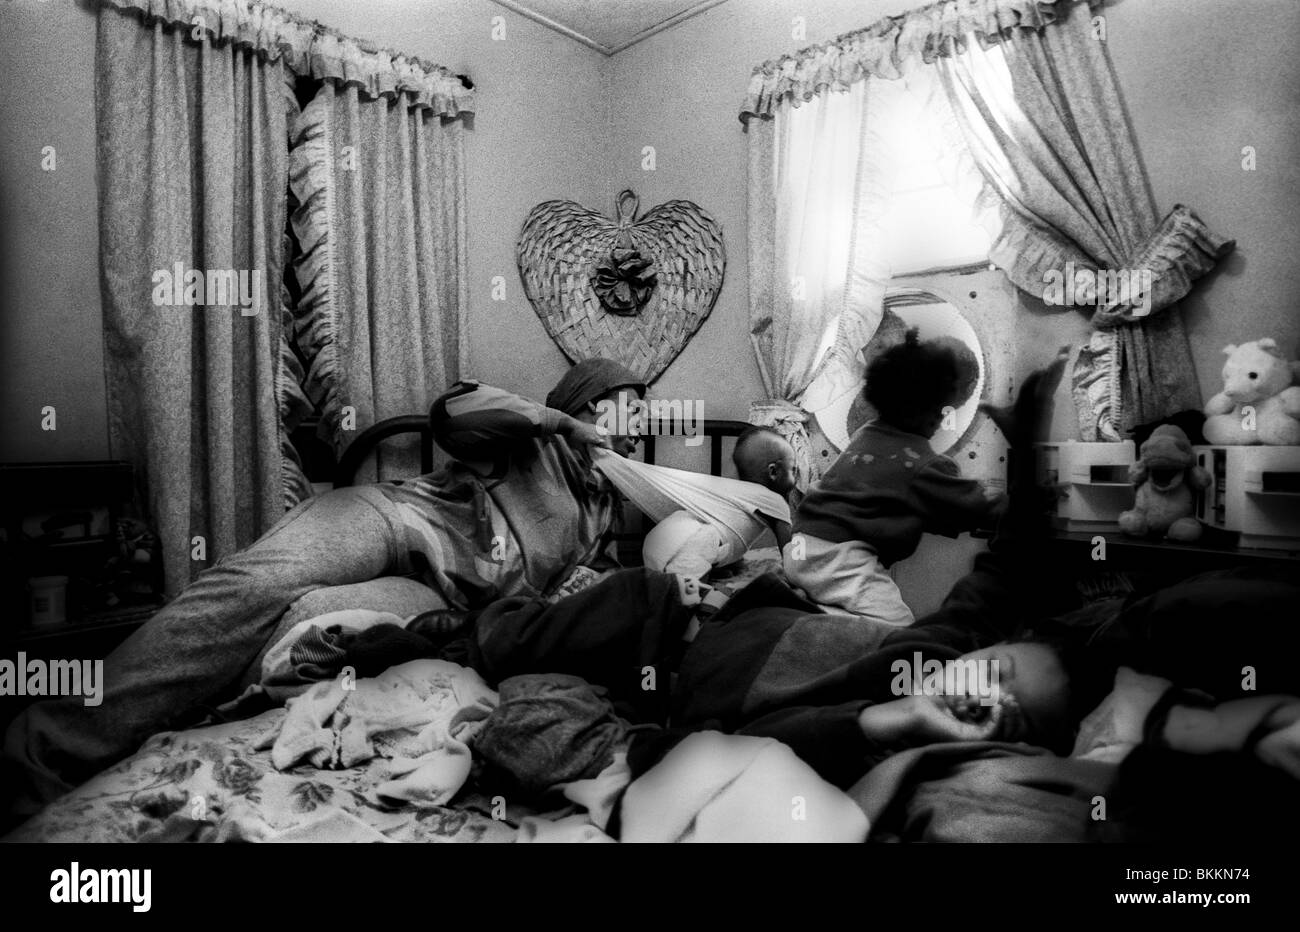 A Lake Providence family in their home in 1995. At this time Lake providence was deemed the poorest town in the - Stock Image